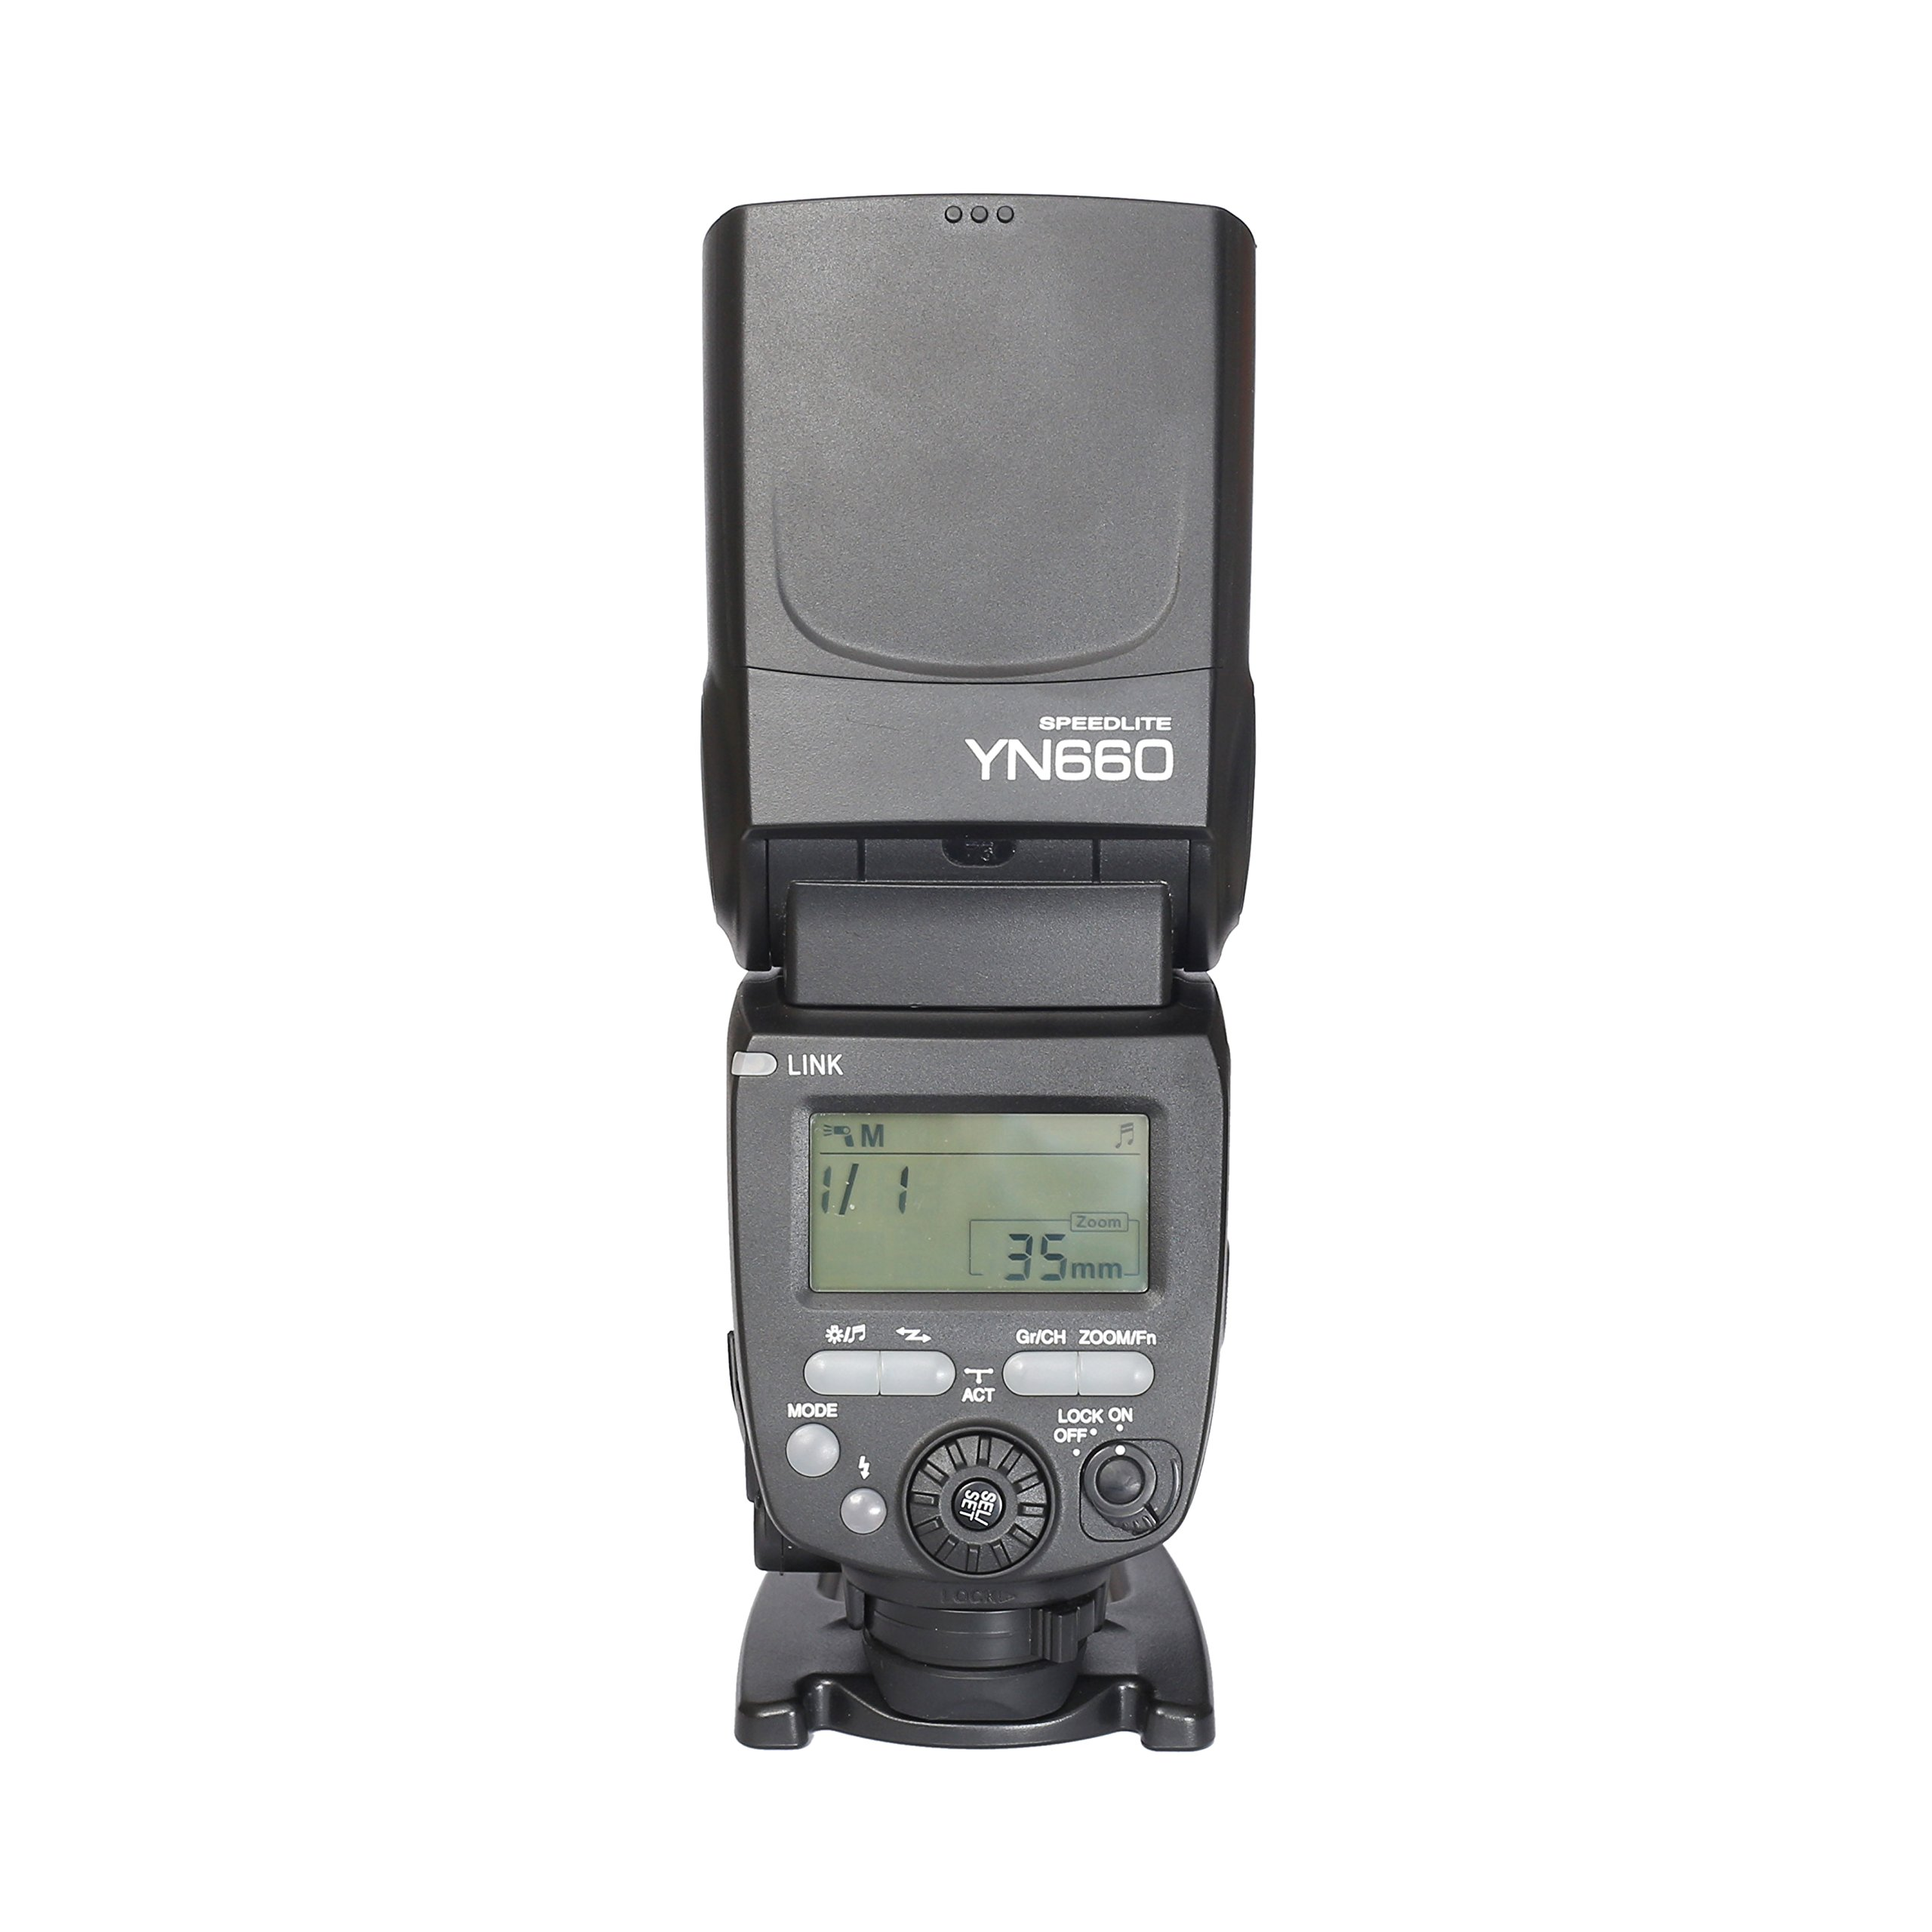 YONGNUO YN660 Wireless Manual Flash Speedlite GN66 2.4G Wireless Radio Master+ Slave for Canon Nikon Pentax Olympus